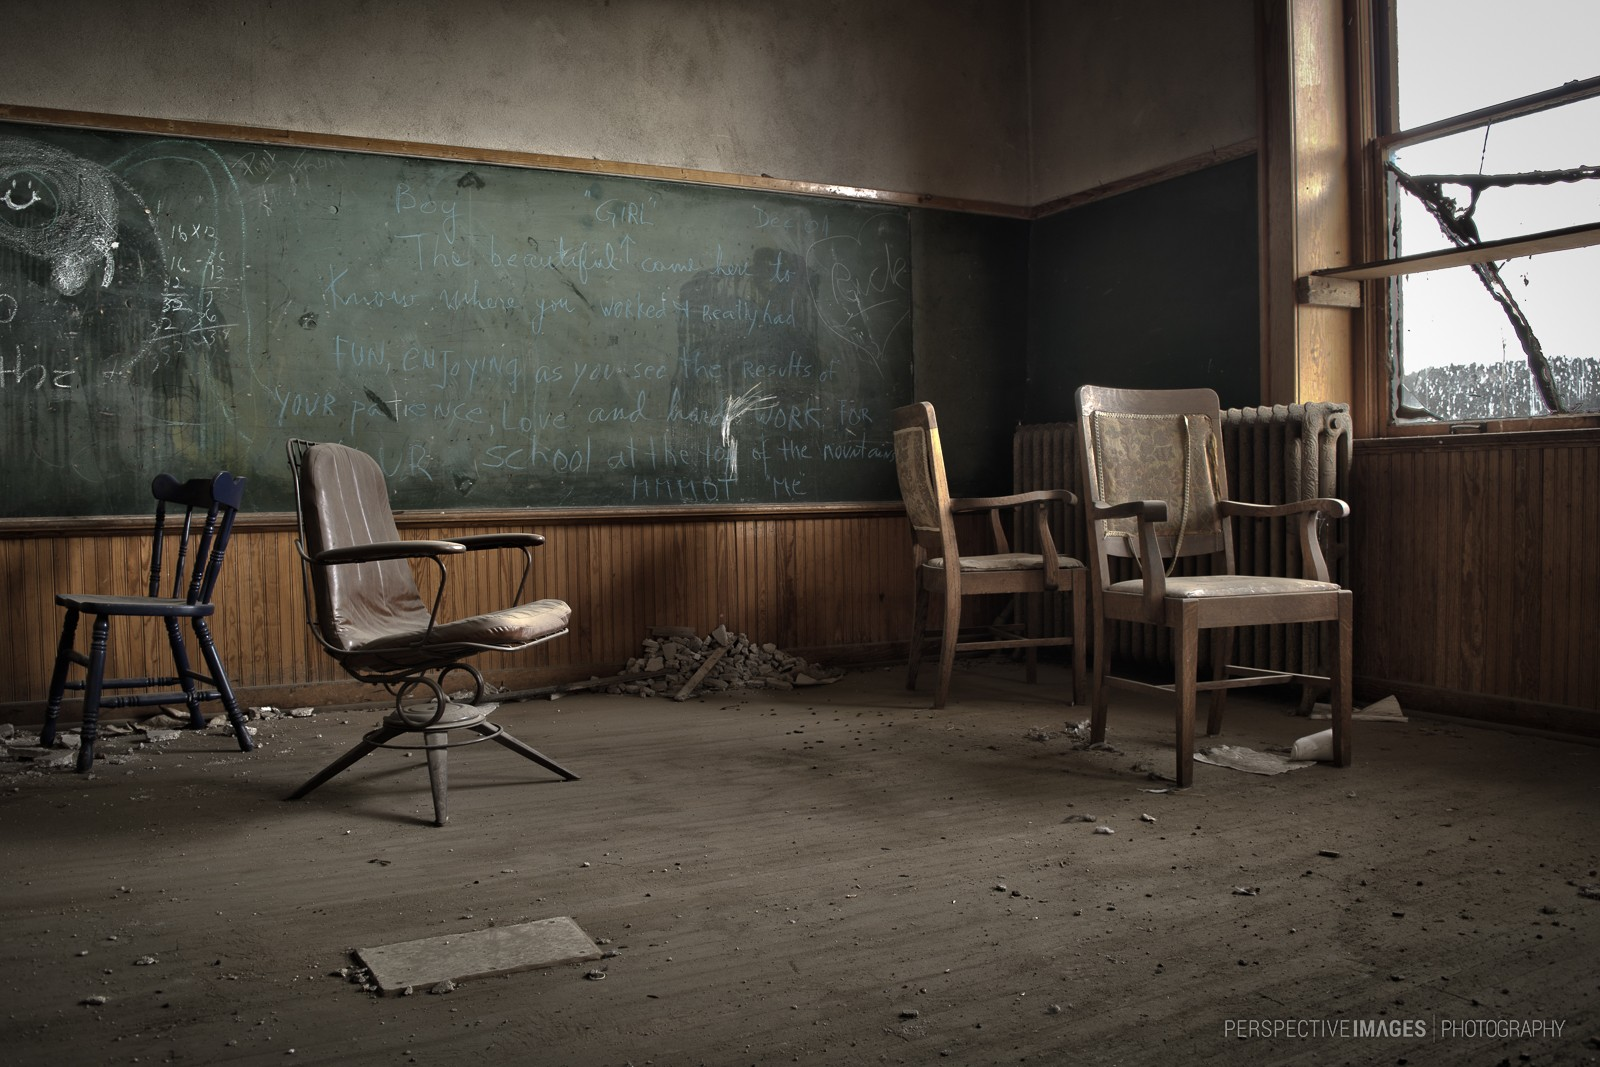 School House Blues - Teachers chairs sit covered in dust at an abandoned school house.